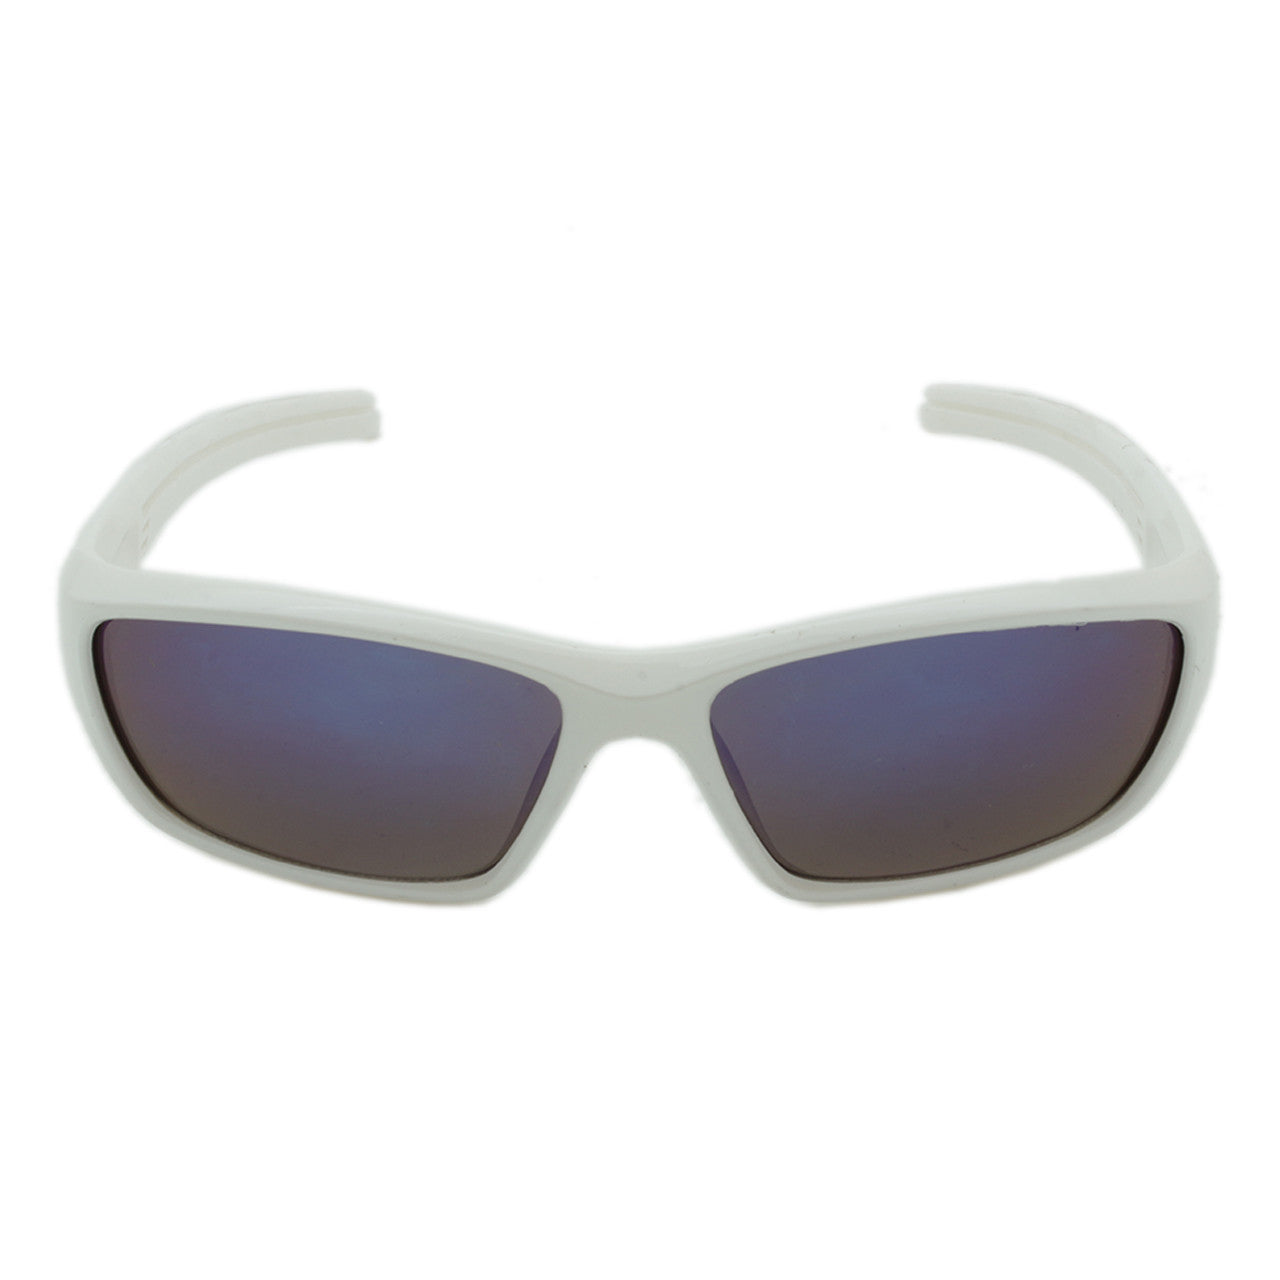 966910e5339c Boys Sport Sunglasses Daytona White – Hang Ten Kids Sunglasses